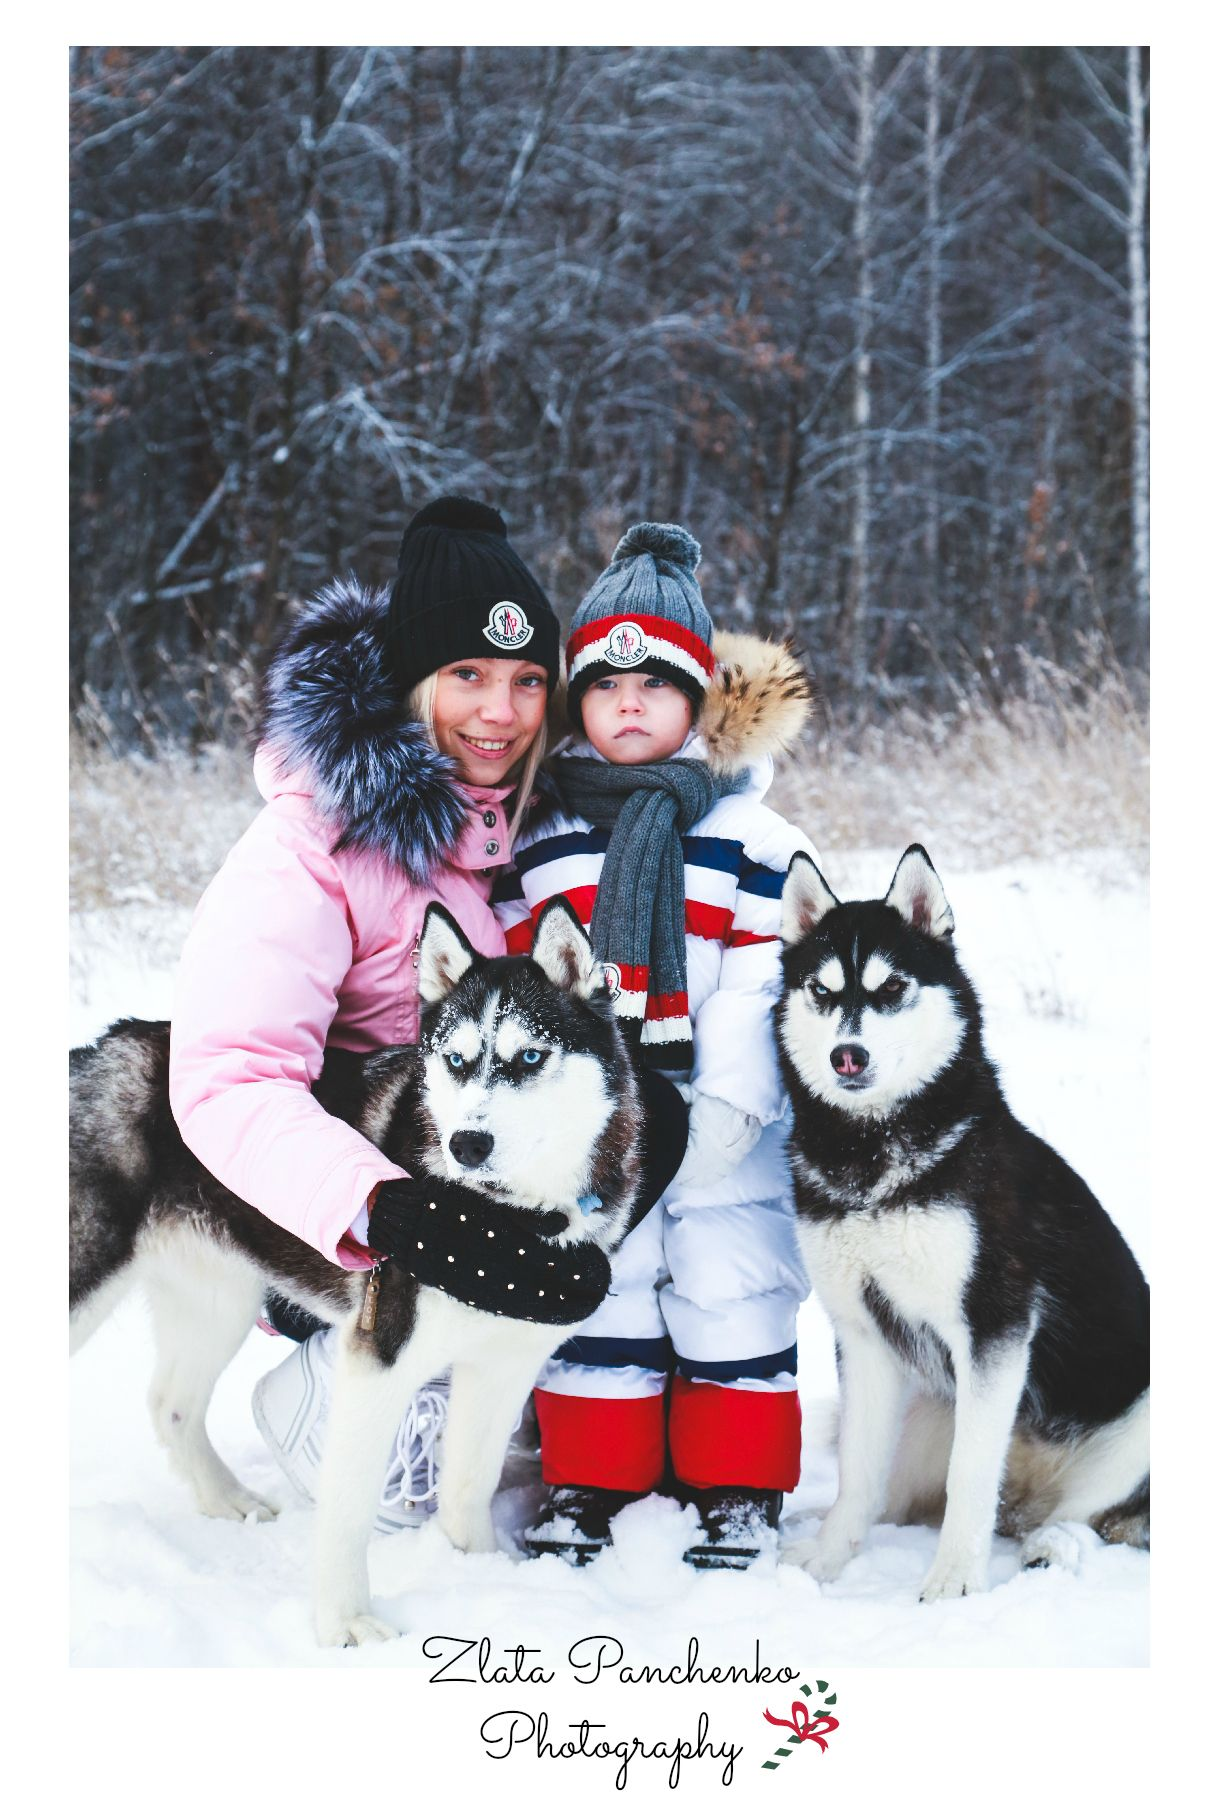 Amazing winter family photoshoot with husky dogs... Would